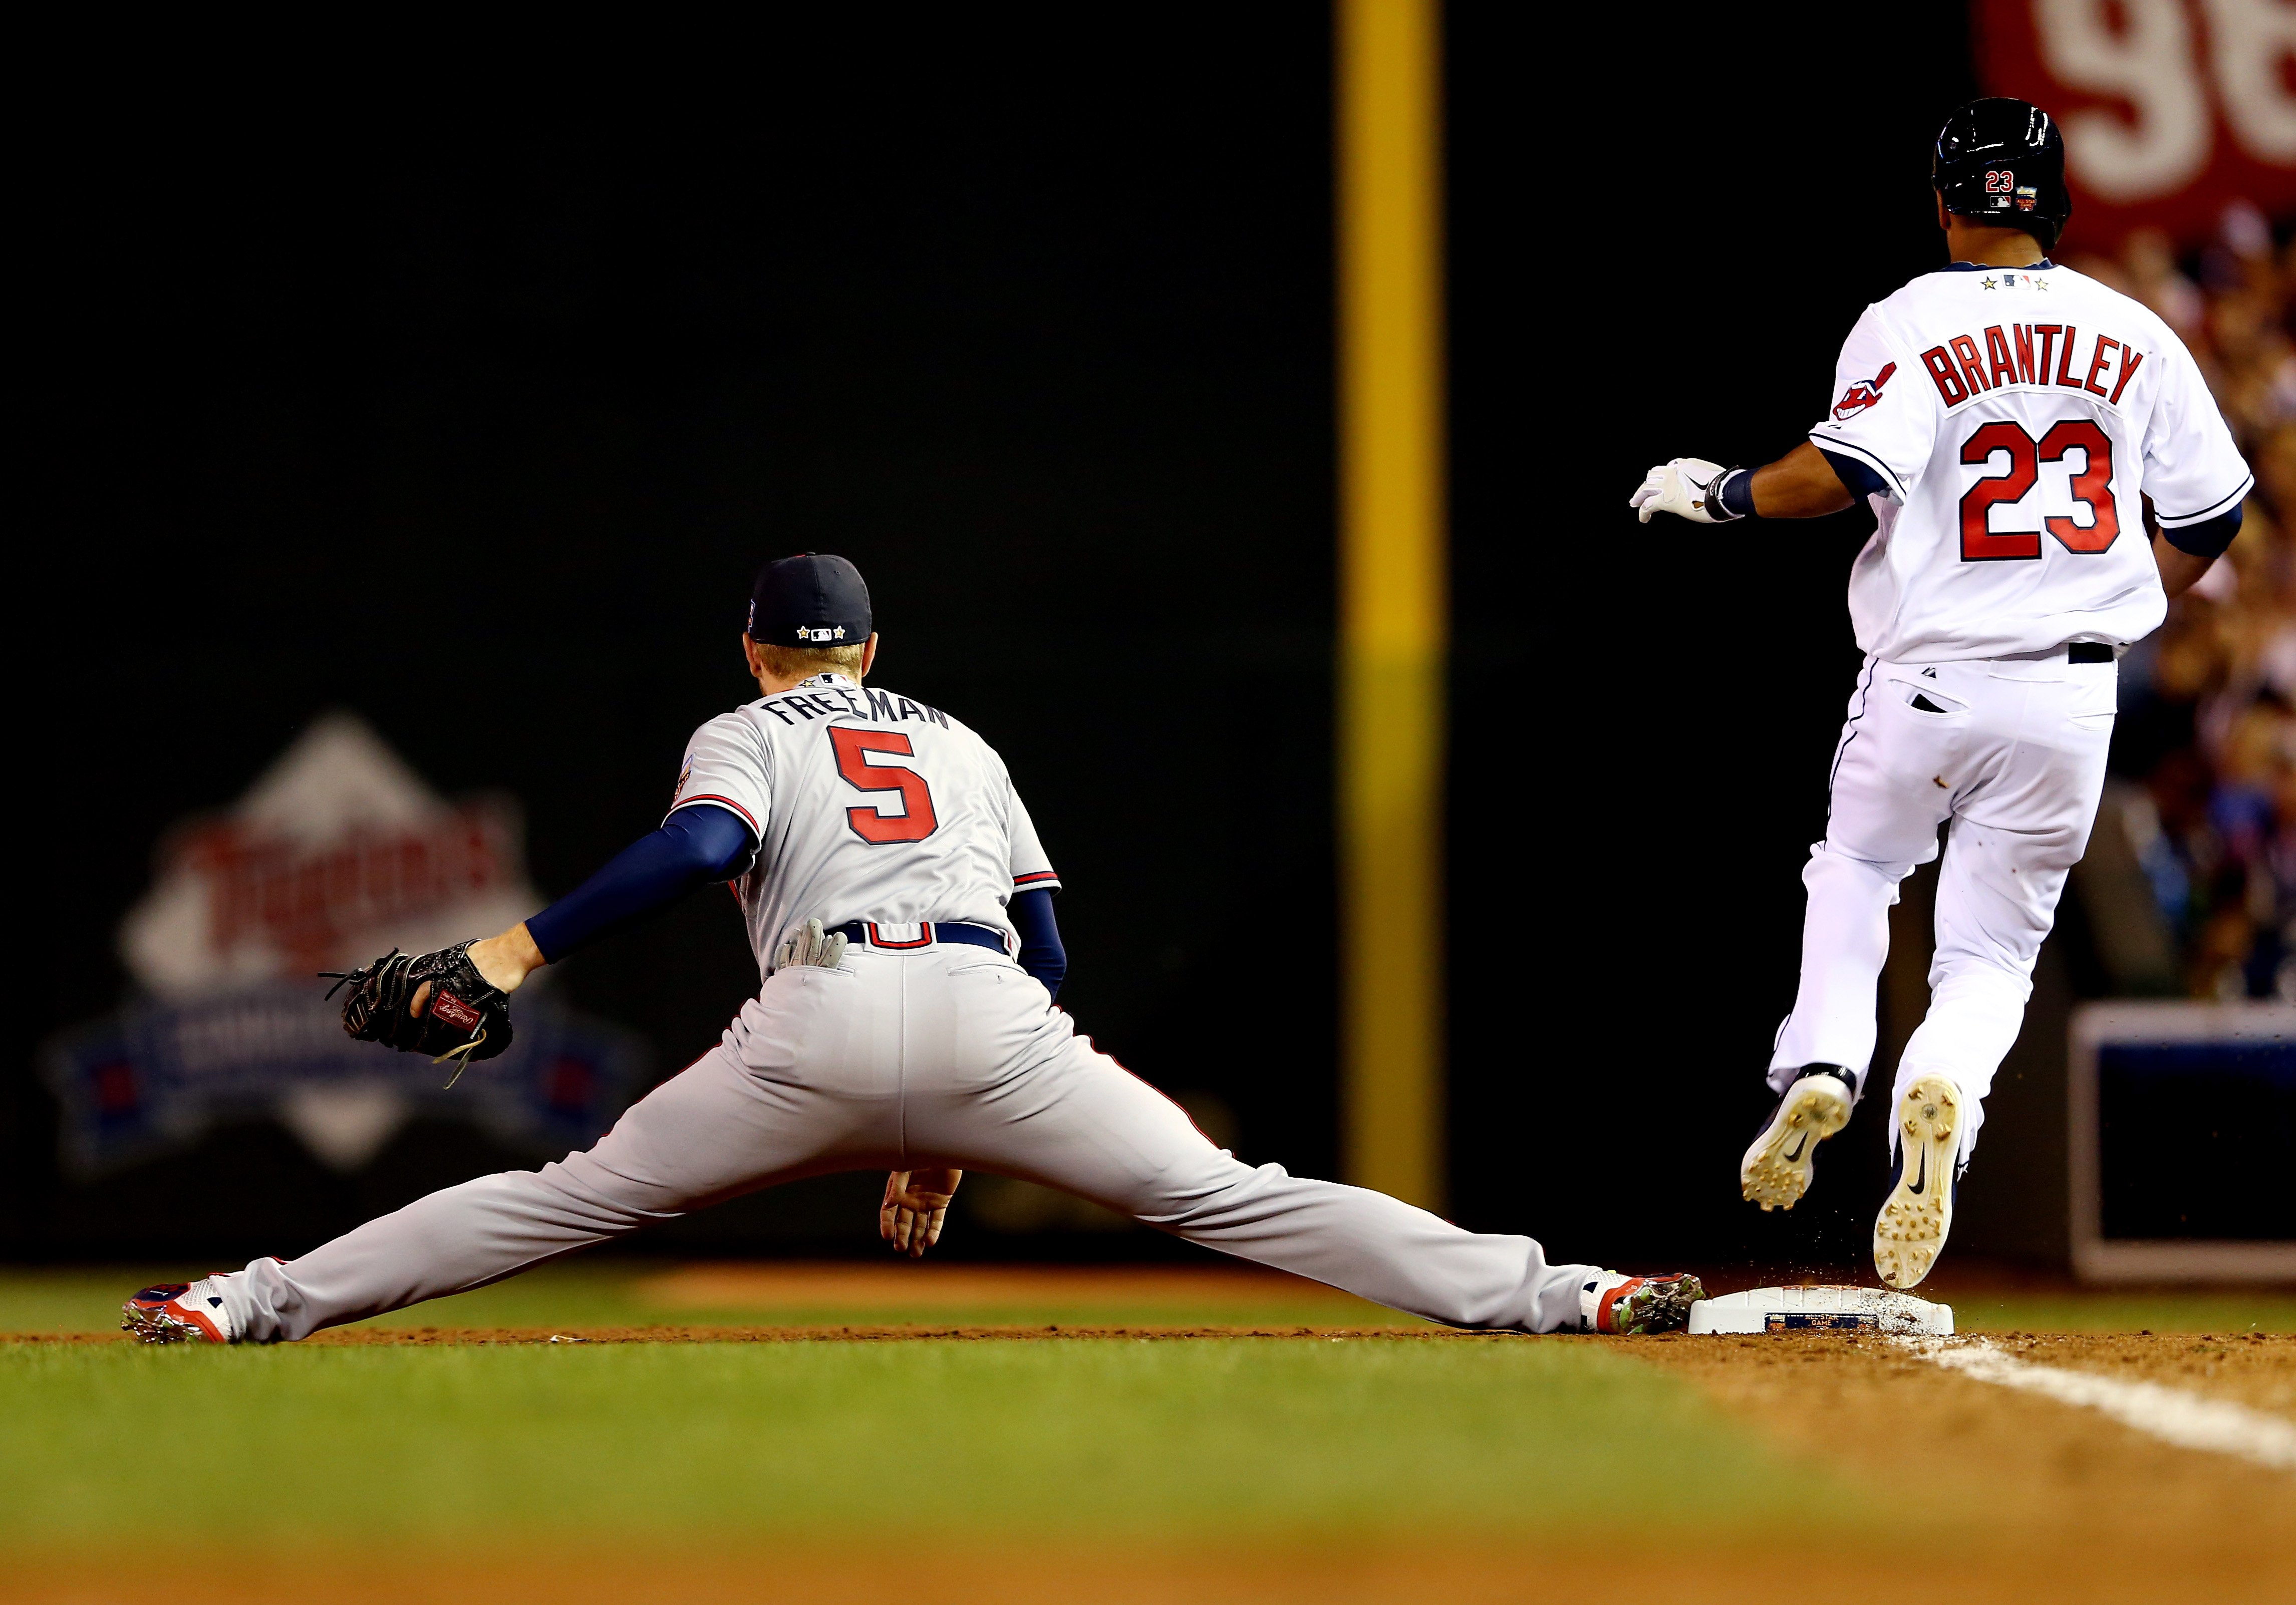 National League All-Star Freddie Freeman #5 of the Atlanta Braves stretches to make a catch as American League All-Star Michael Brantley #23 of the Cleveland Indians runs to first base during the 85th MLB All-Star Game at Target Field on July 15, 2014 in Minneapolis.